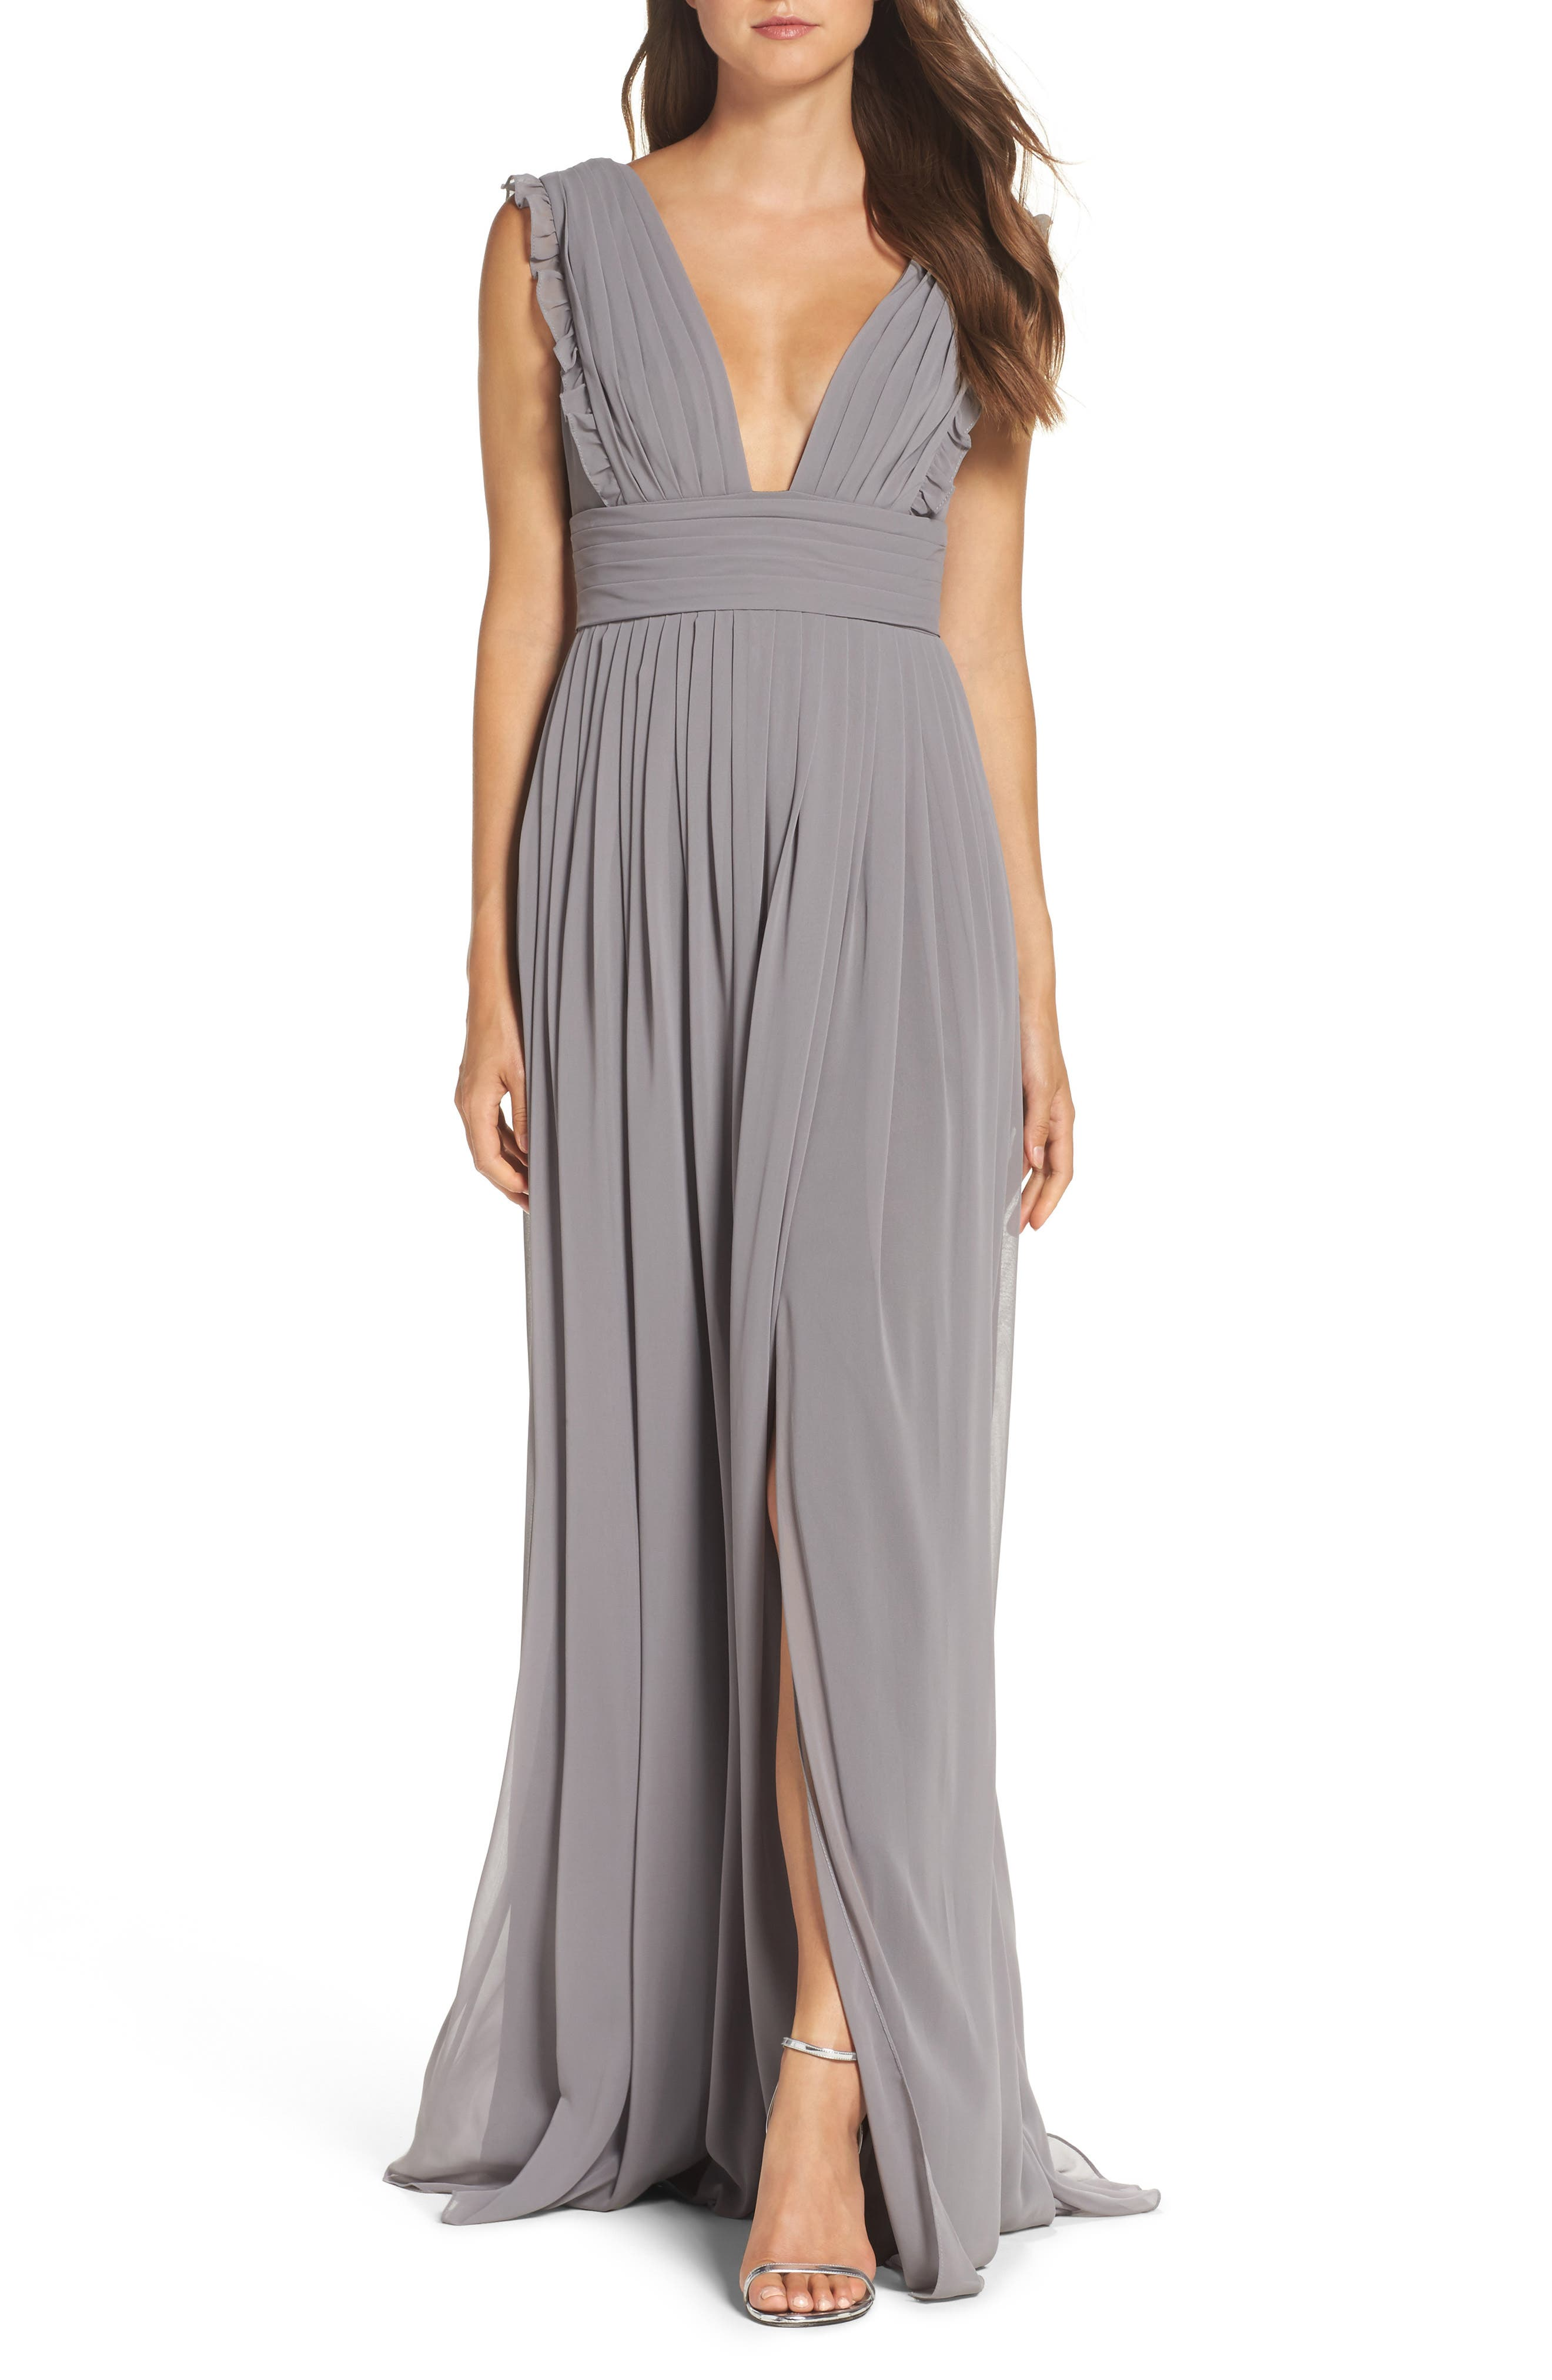 Main Image - Monique Lhuillier Bridesmaids Deep V-Neck Ruffle Pleat Chiffon Gown